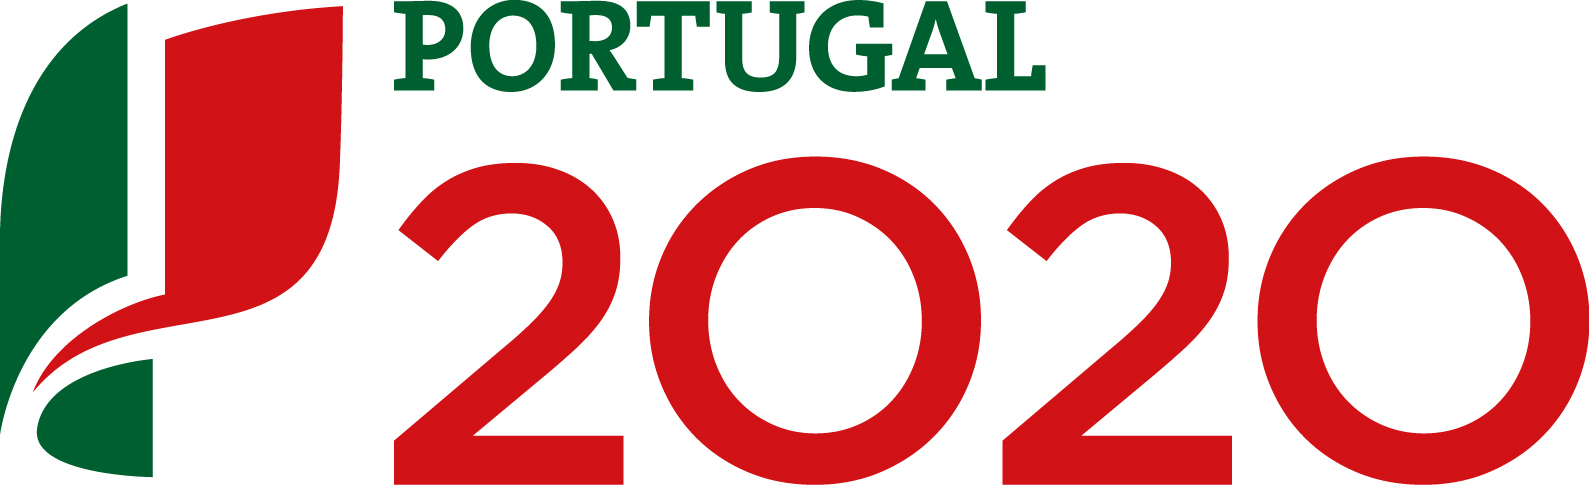 Banner Portugal 2020